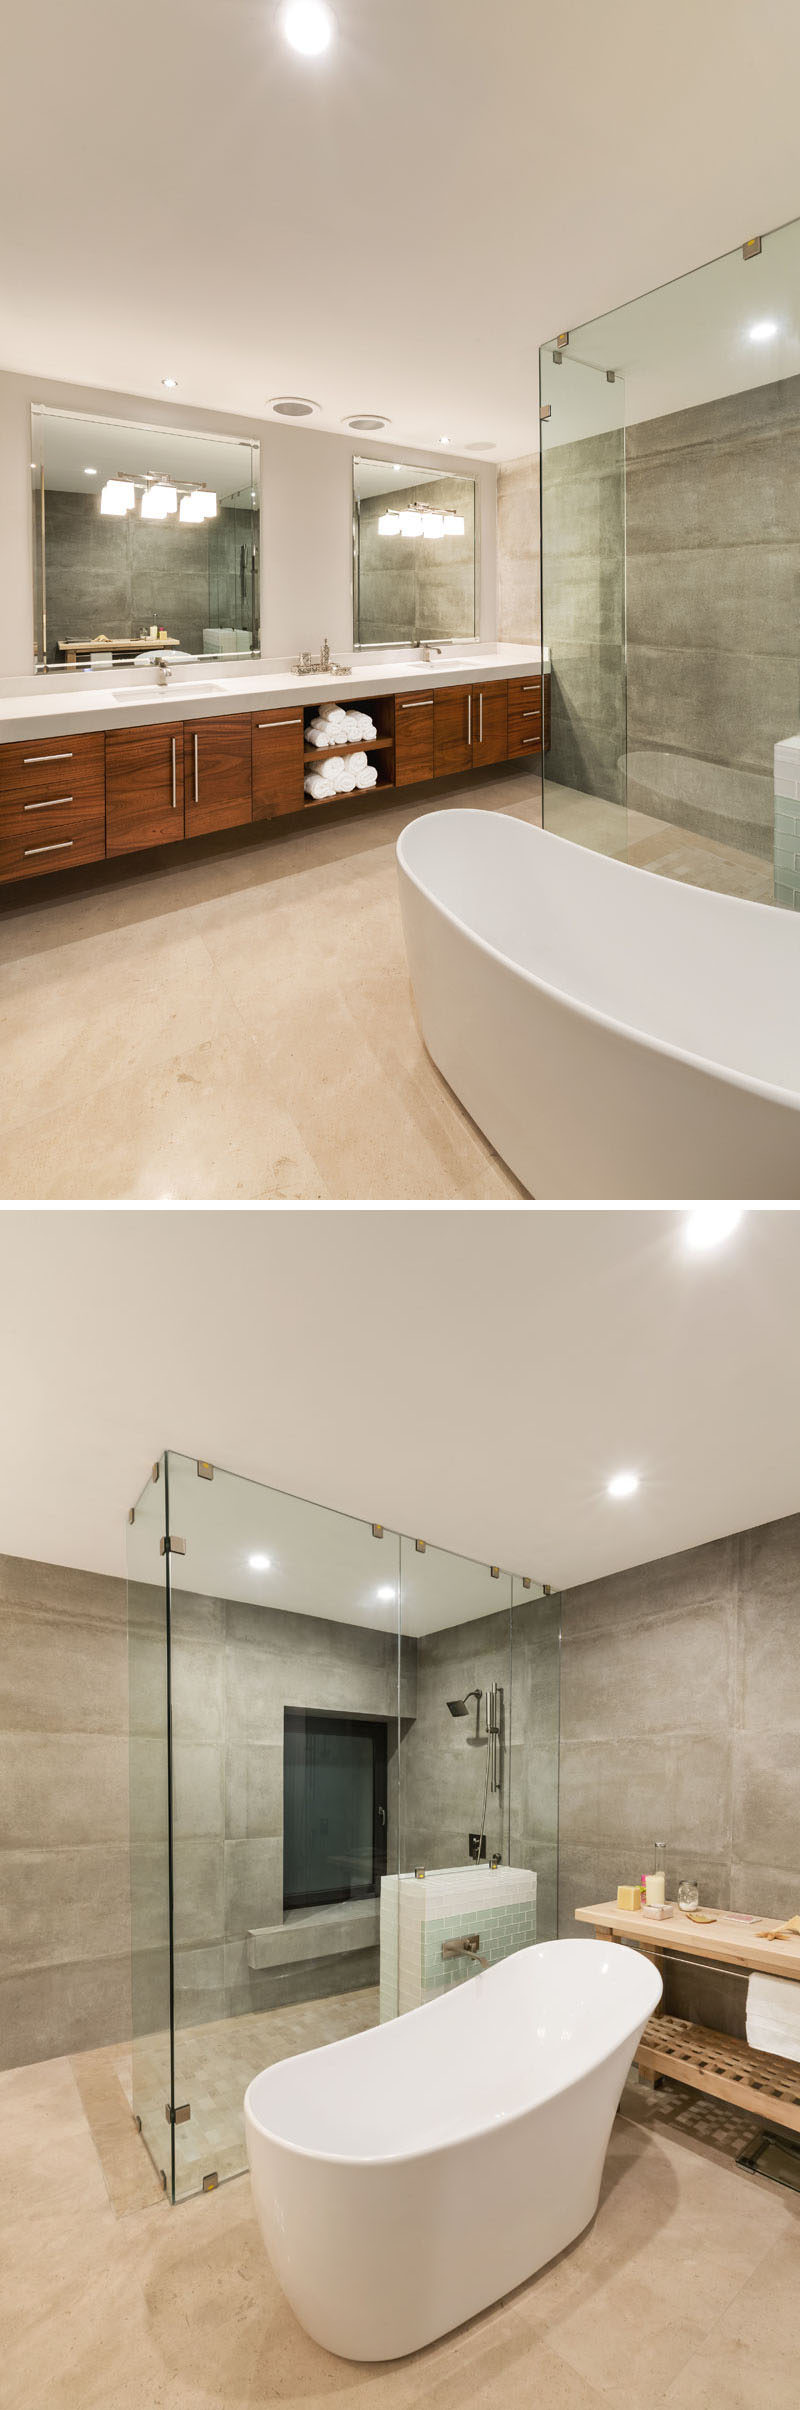 In this newly updated modern bathroom, marble tiles on the walls were removed and replaced by imported porcelain tiles. The bathtub is central to the bathroom, while the shower has a floor-to-ceiling glass surround, and a large wood vanity with dual sinks runs the length of one wall. Large mirrors help to reflect the light throughout the room.